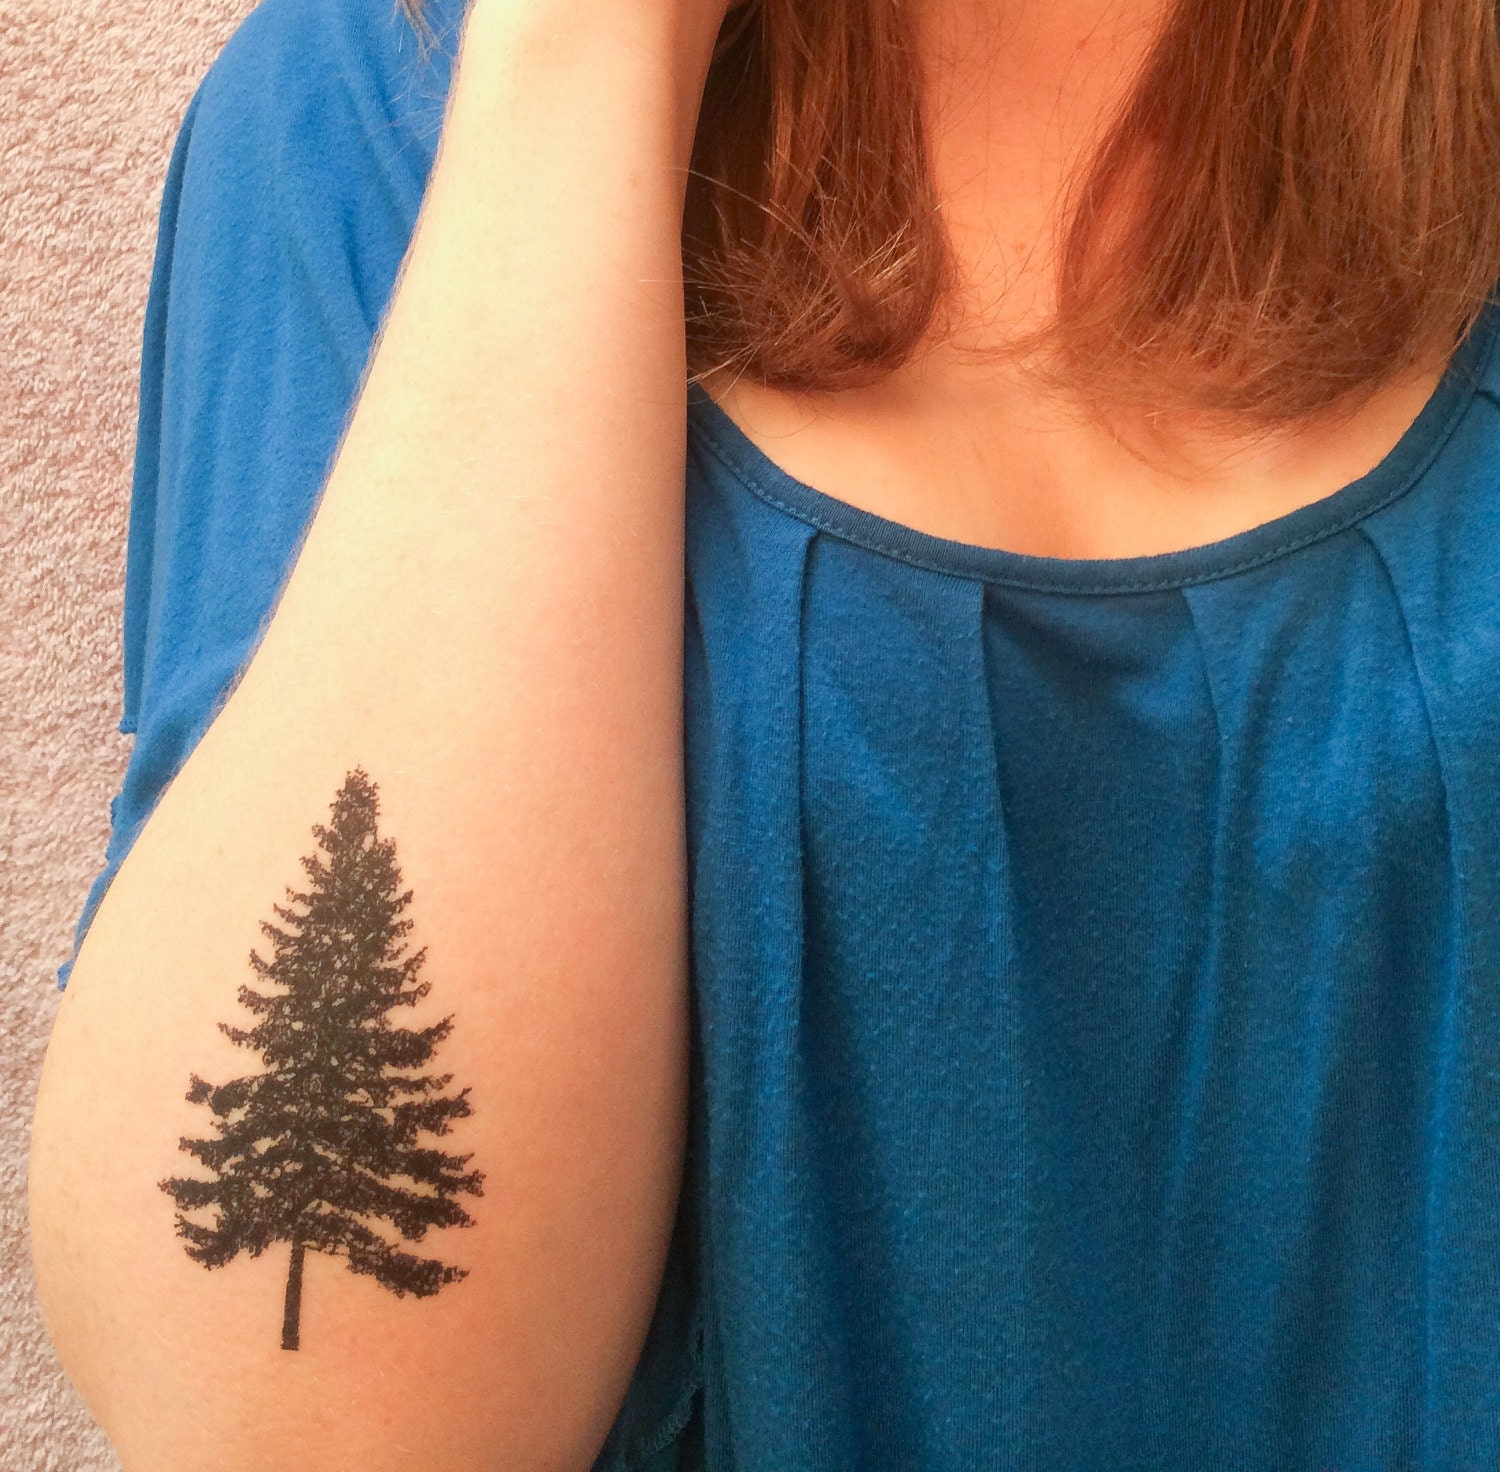 Pine Tree Hand Tattoo 2 Pine Tree Temporary Tattoos